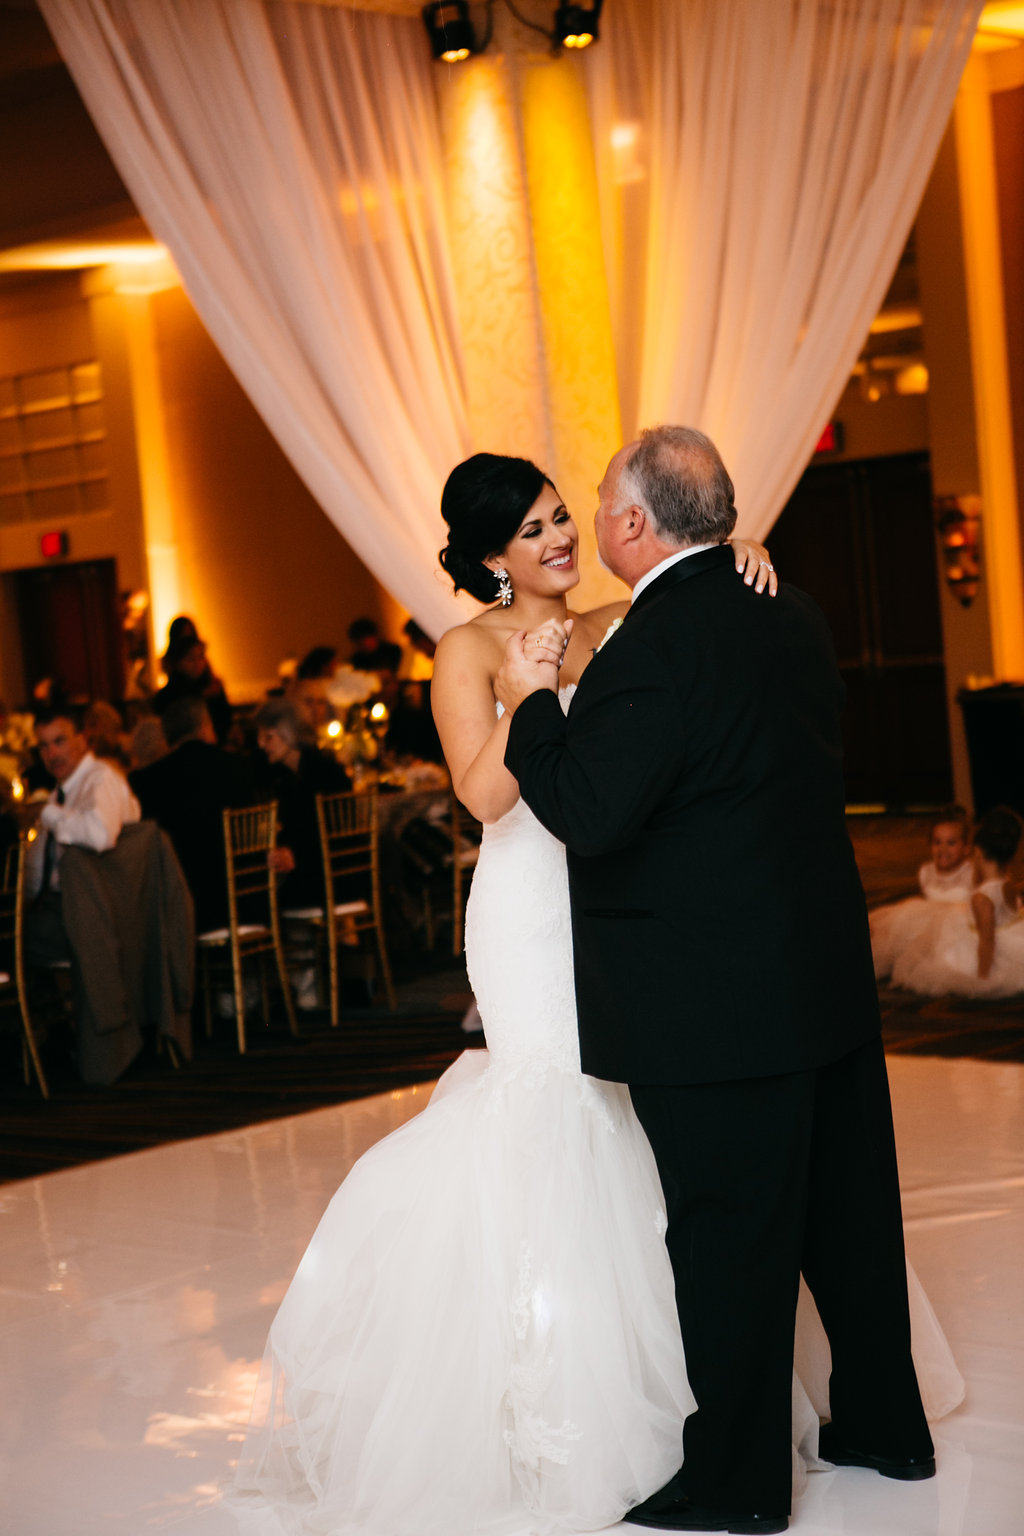 Omaha Nebraska Hilton Hotel Father-Daughter Dance